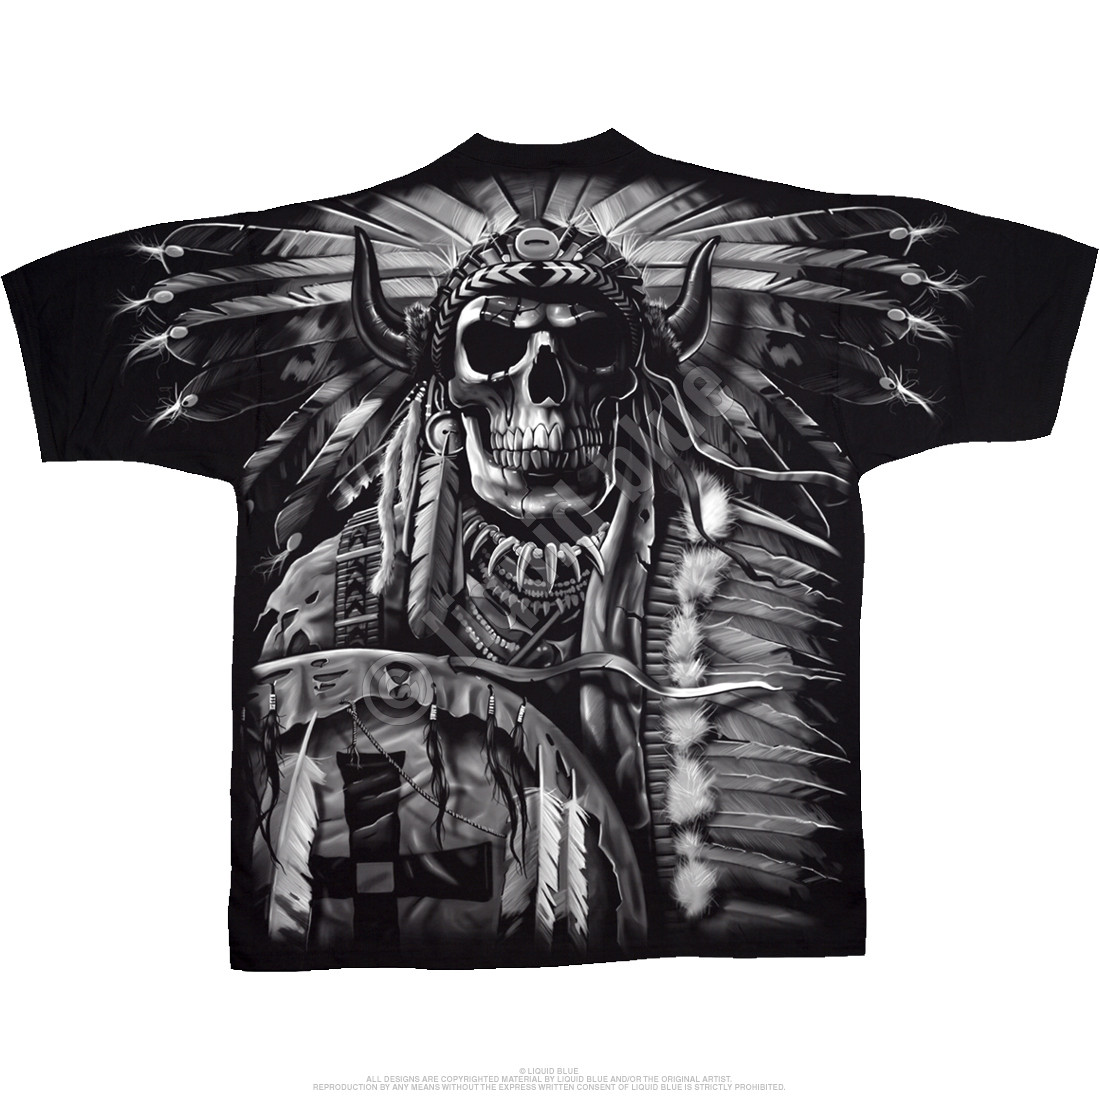 Black t shirt roblox - Indian Skull Black T Shirt